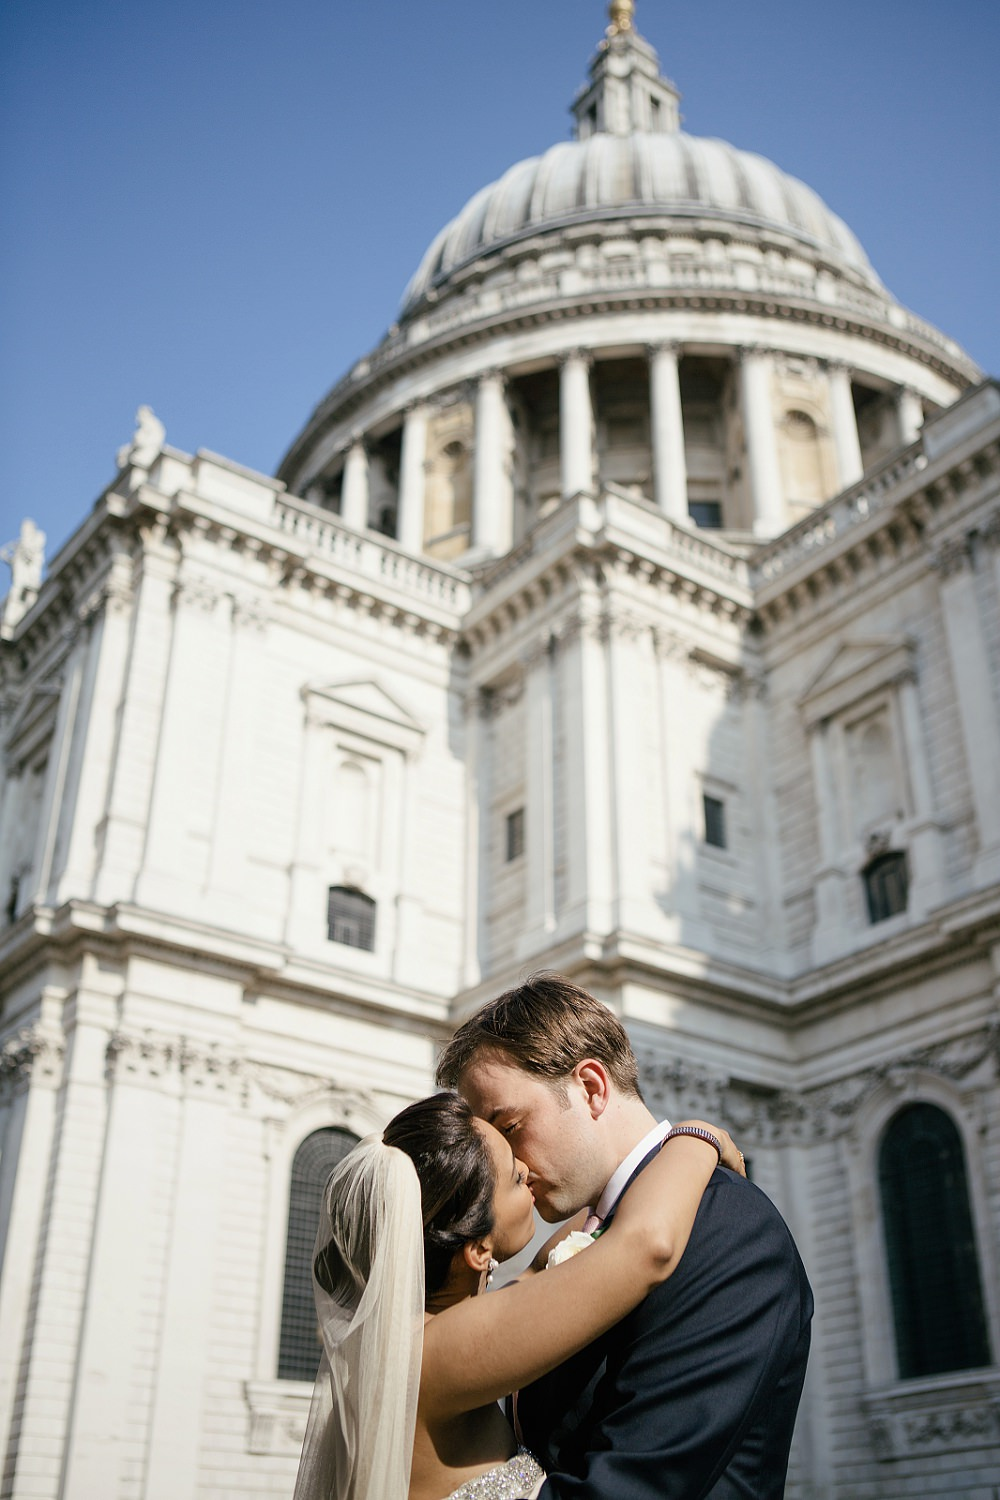 Brie and groom kissing in front of St Pauls Cathedral